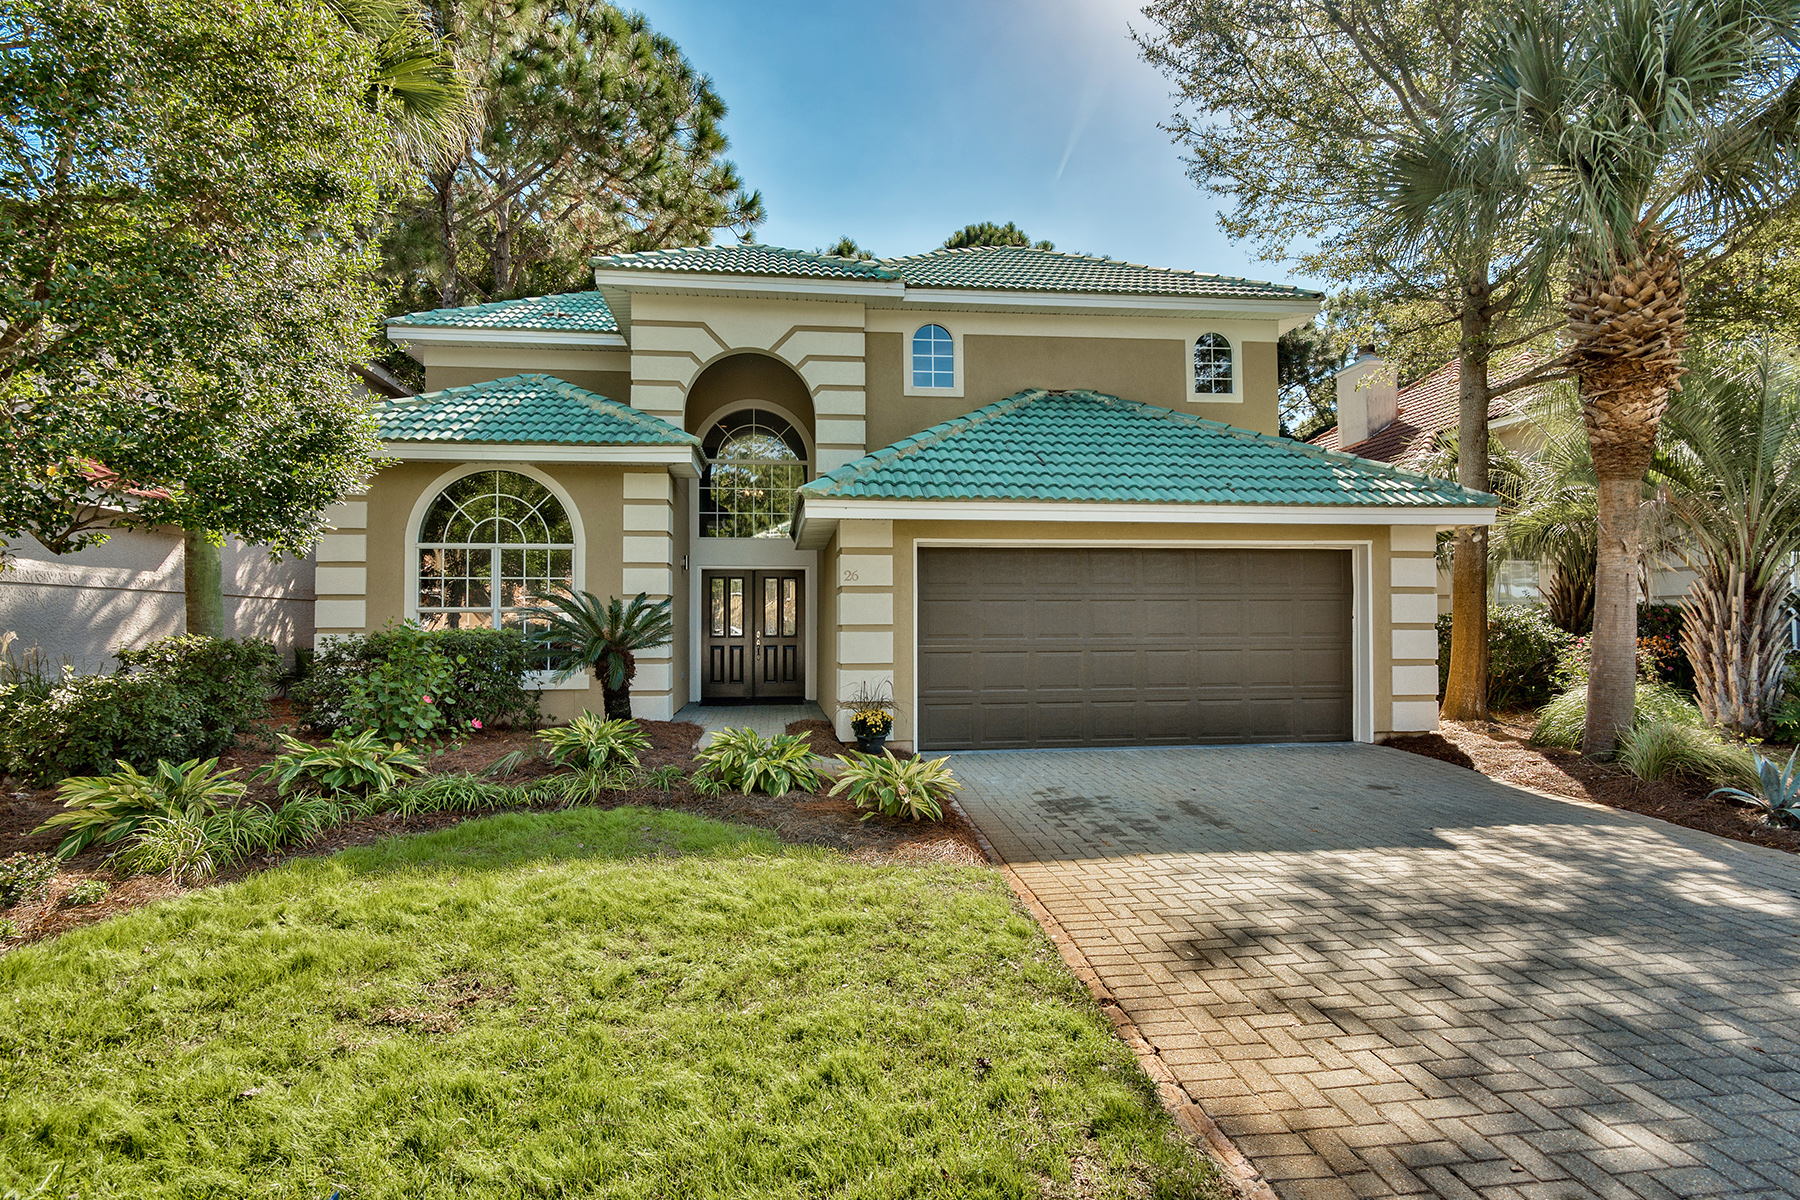 Maison unifamiliale pour l Vente à NEWLY REMODELED GOLF COURSE HOME 26 Indigo Loop Miramar Beach, Florida, 32550 États-Unis